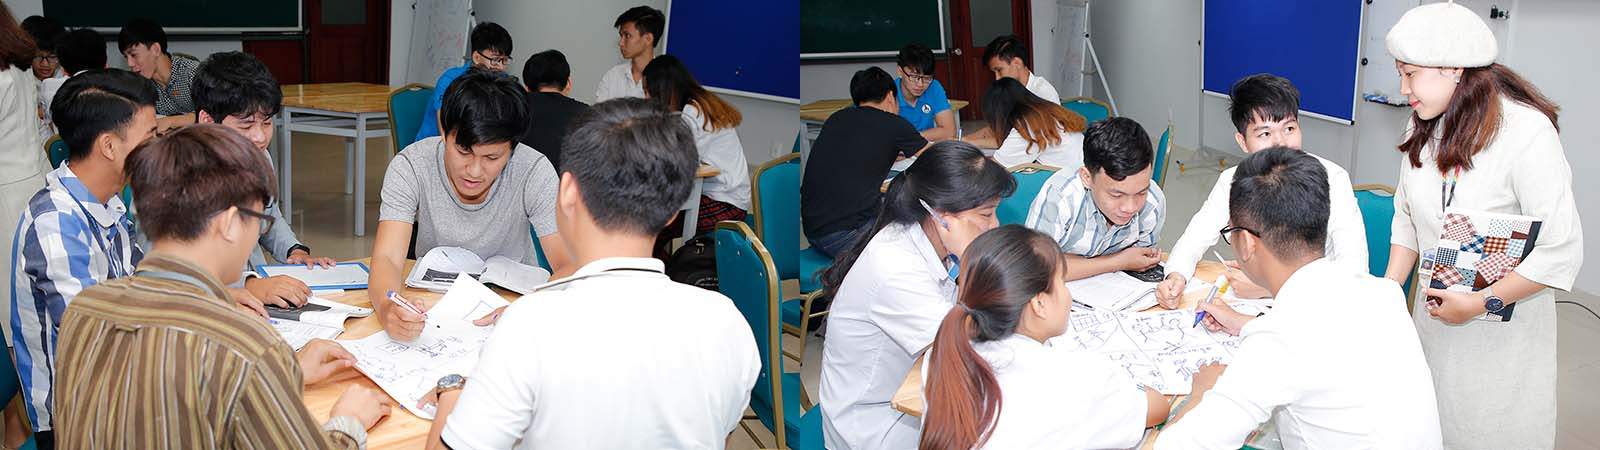 Group Work Activities